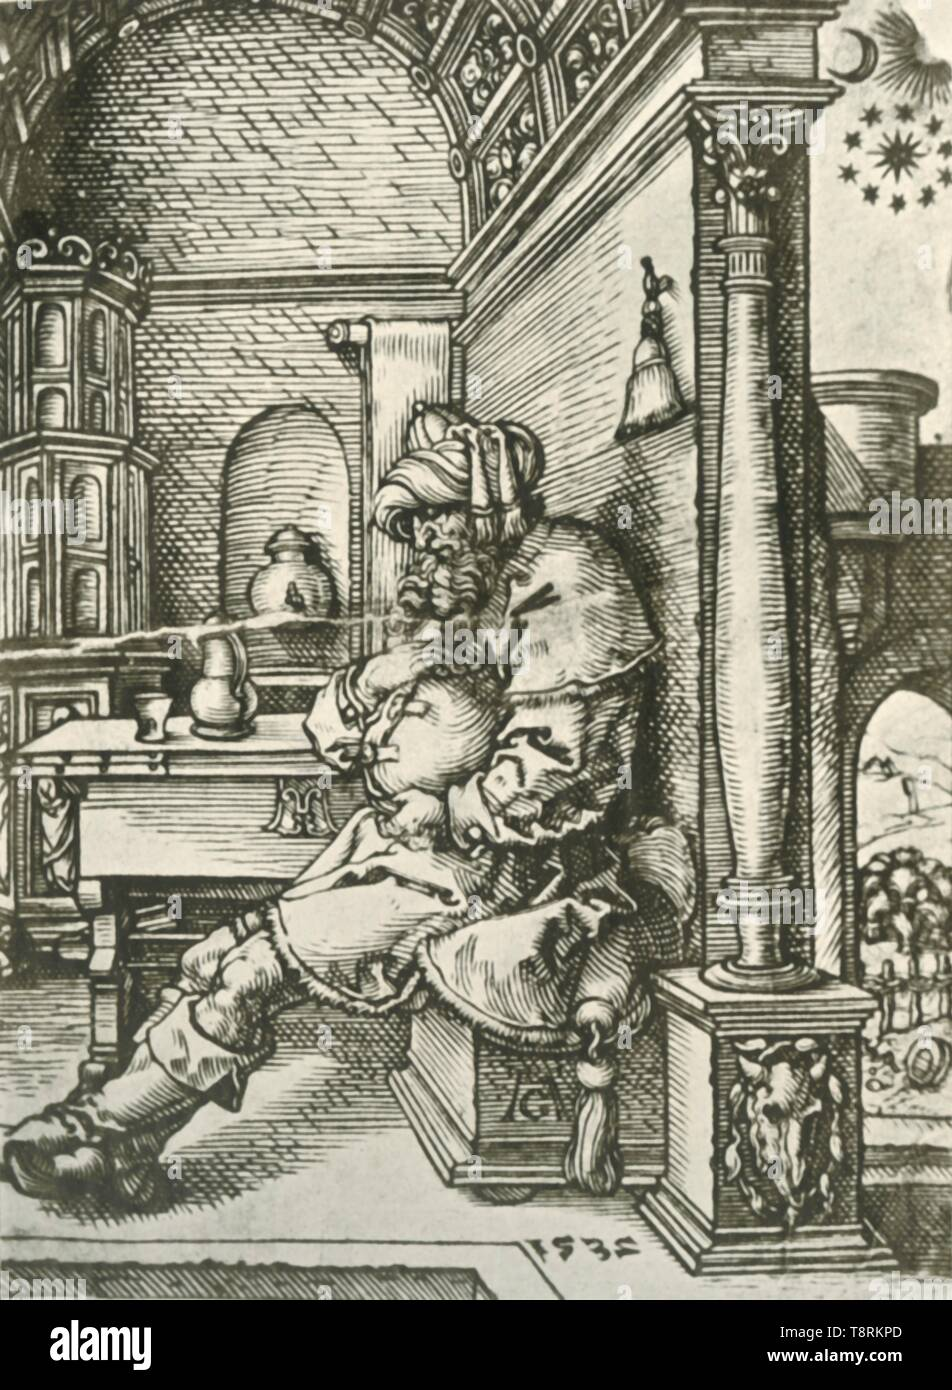 """'Jacob Meditating on Joseph's Dreams', 1532, (1908). Scene from the Old Testament: Jacob thinking about the dreams of his son Joseph, 16th century German interior with stove on the left. From """"The Burlington Magazine for Connoisseurs"""", Volume XIII - April - September 1908. [The Burlington Magazine Ltd, London, 1908] - Stock Image"""